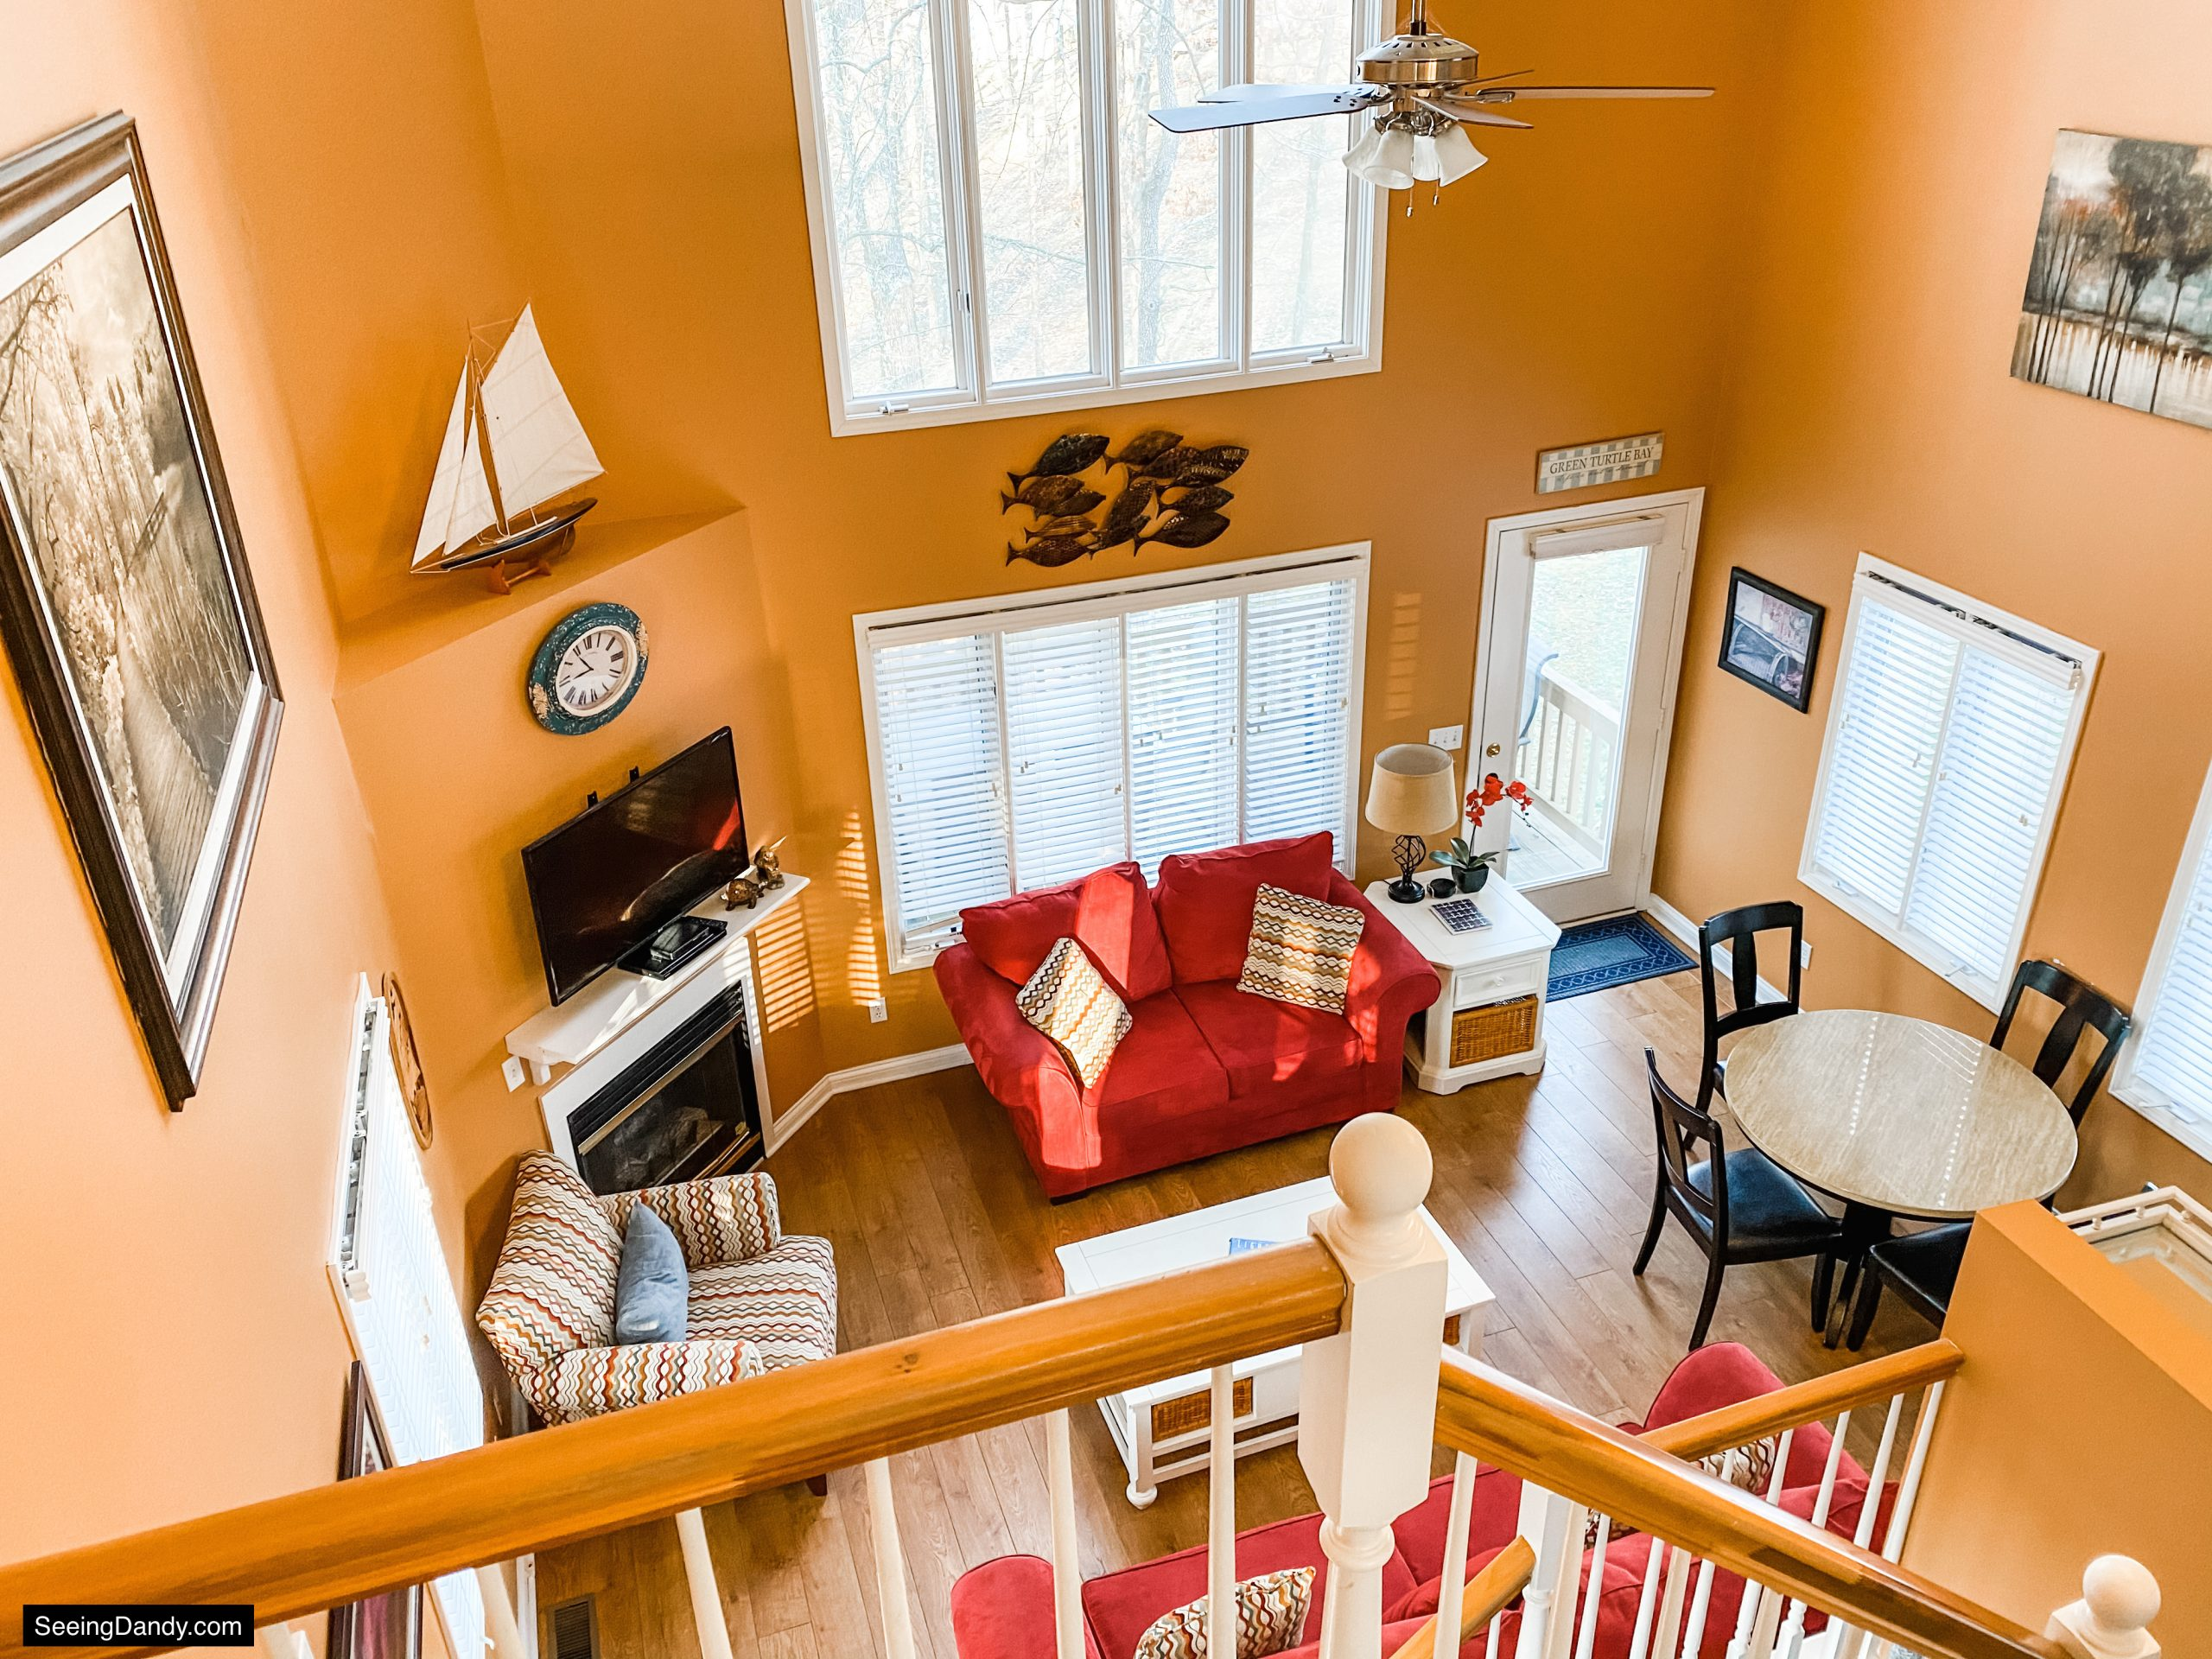 green turtle bay condo, condo staircase, red sofa, vaulted ceiling, elliebelle condo, nautical decor, land between the lakes resort